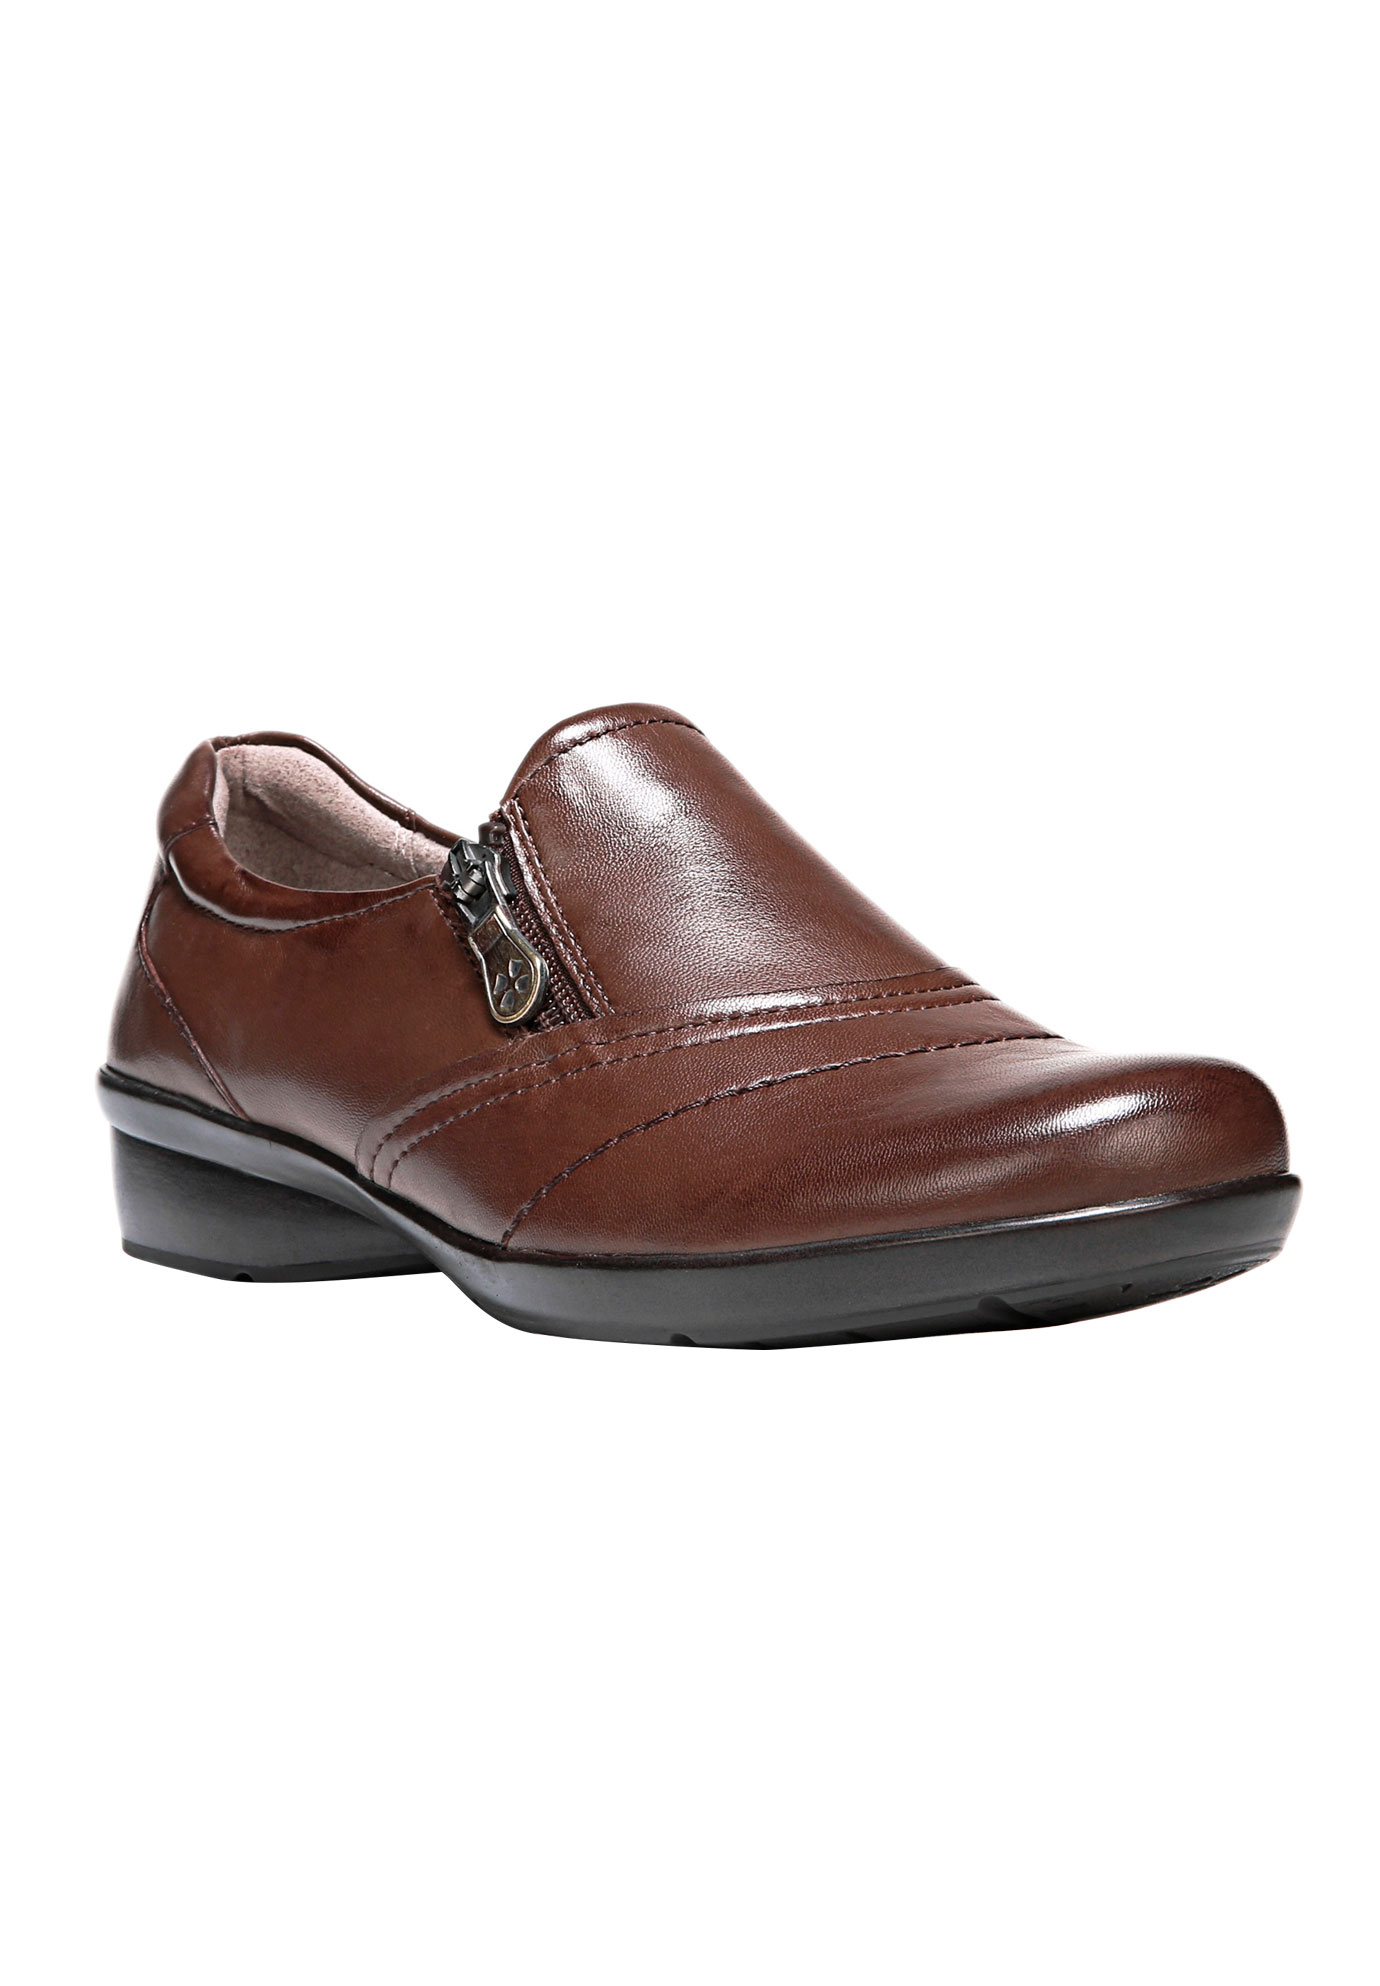 Clarissa Dress Shoes by Naturalizer®,